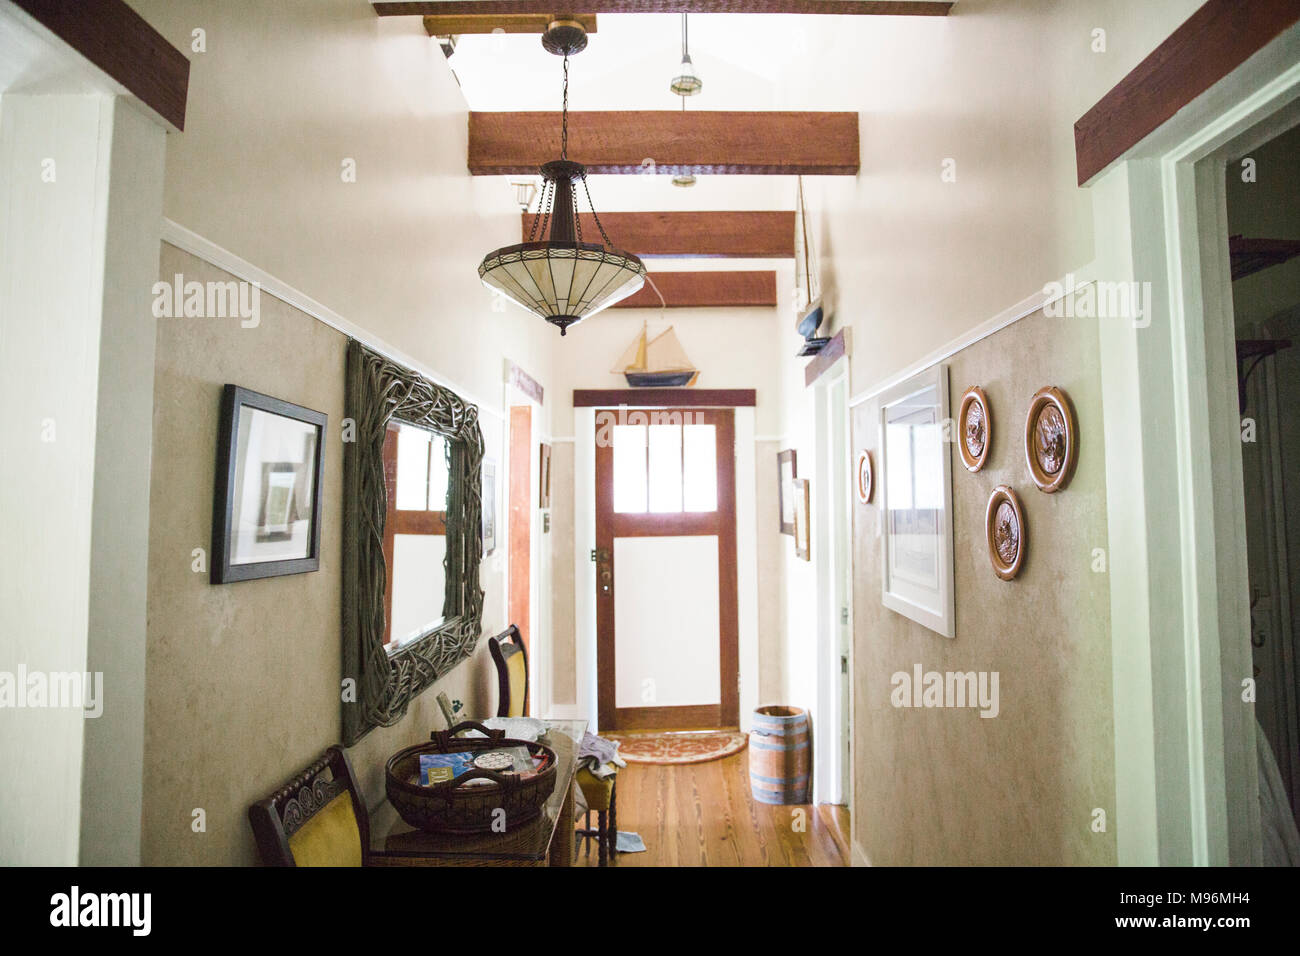 Hallway/Entryway in family home - Stock Image